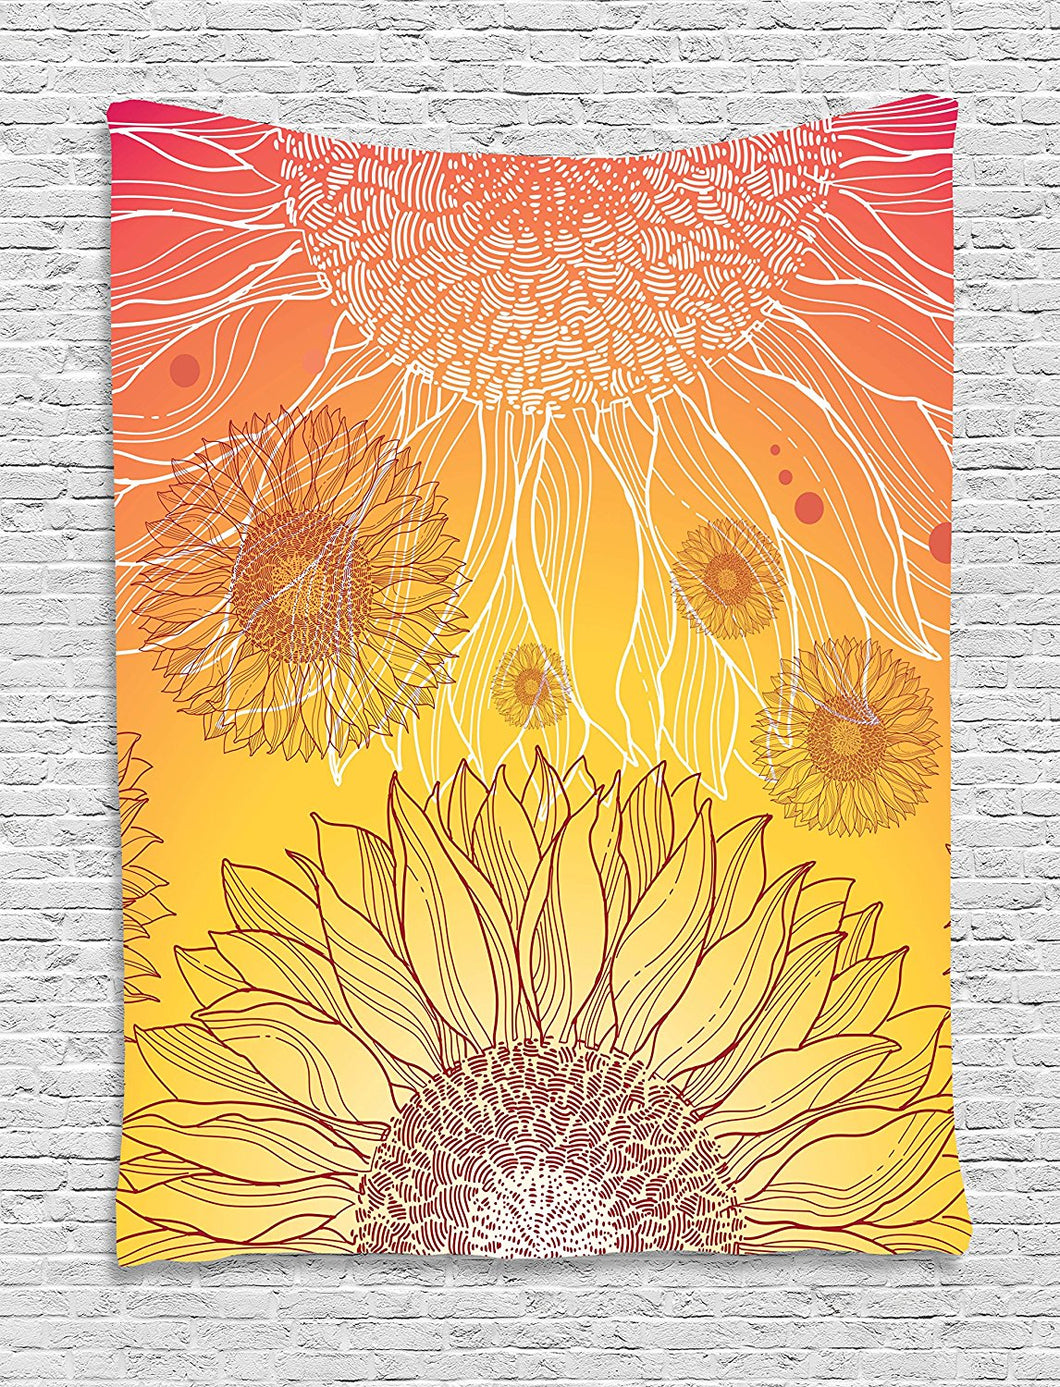 Ambesonne Botanical Tapestry, Sunflowers in Warm Colors Doodle Agriculture Design Blooming Plants, Wall Hanging for Bedroom Living Room Dorm, 60 W X 80 L Inches, Orange Yellow Burgundy